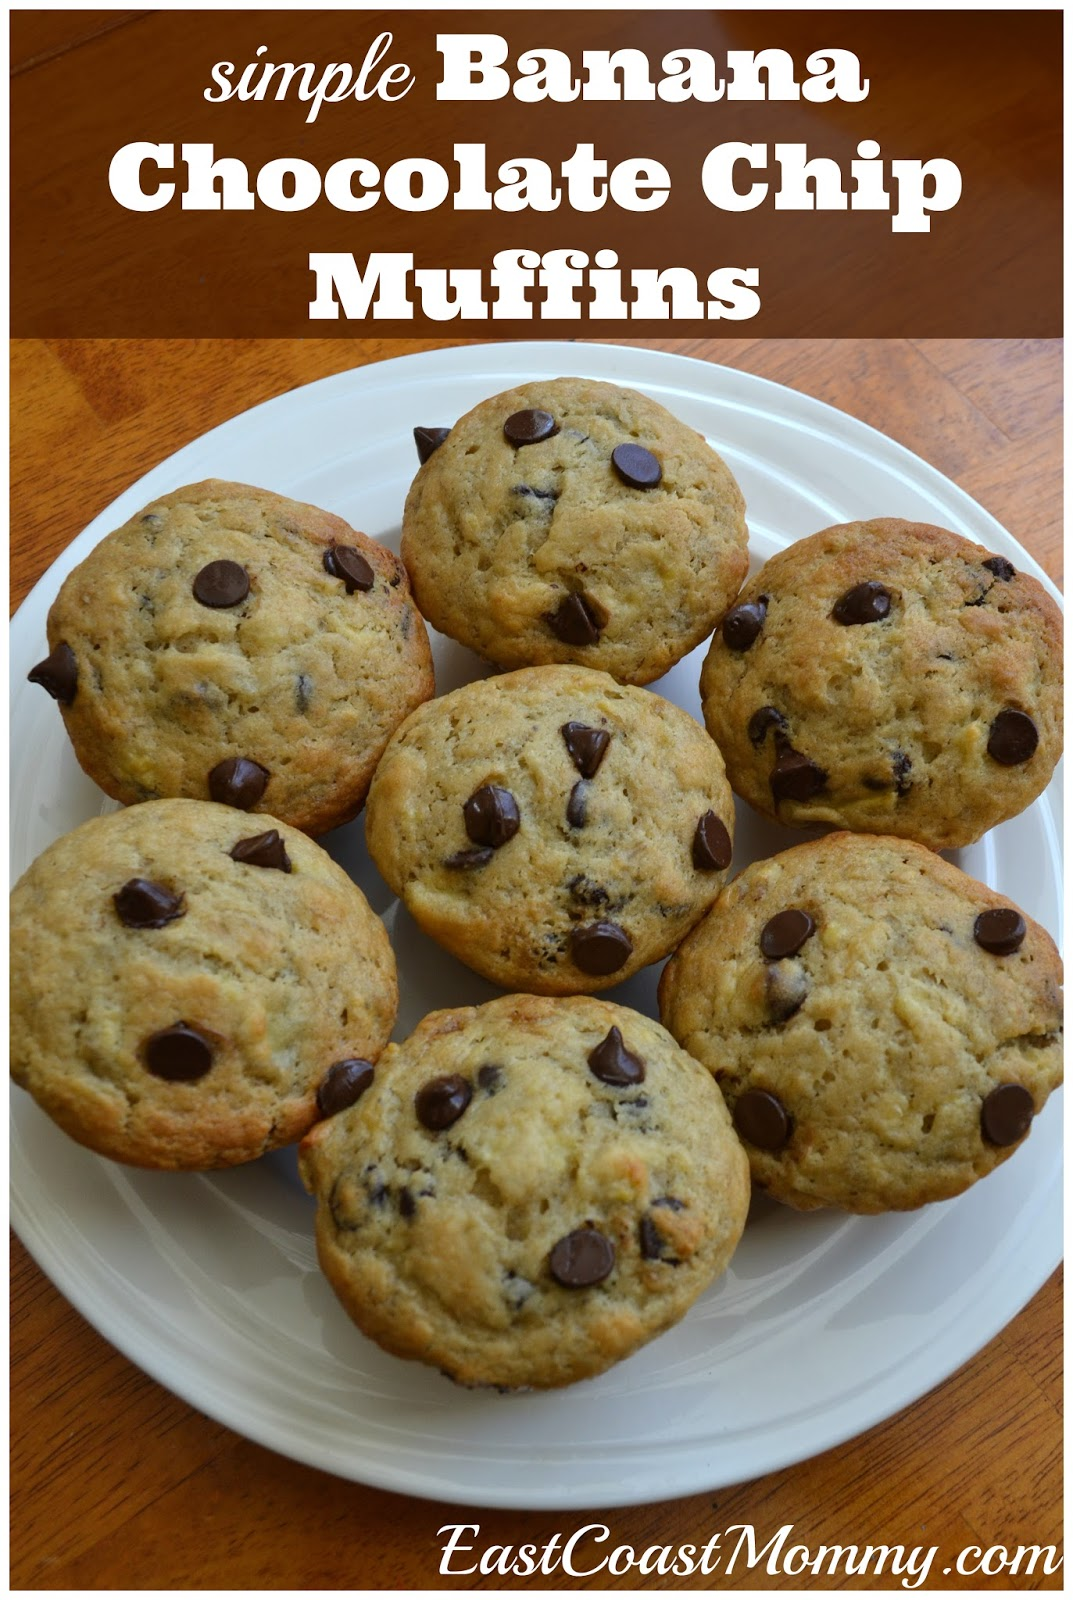 To make my mom's simple banana chocolate chip muffins :